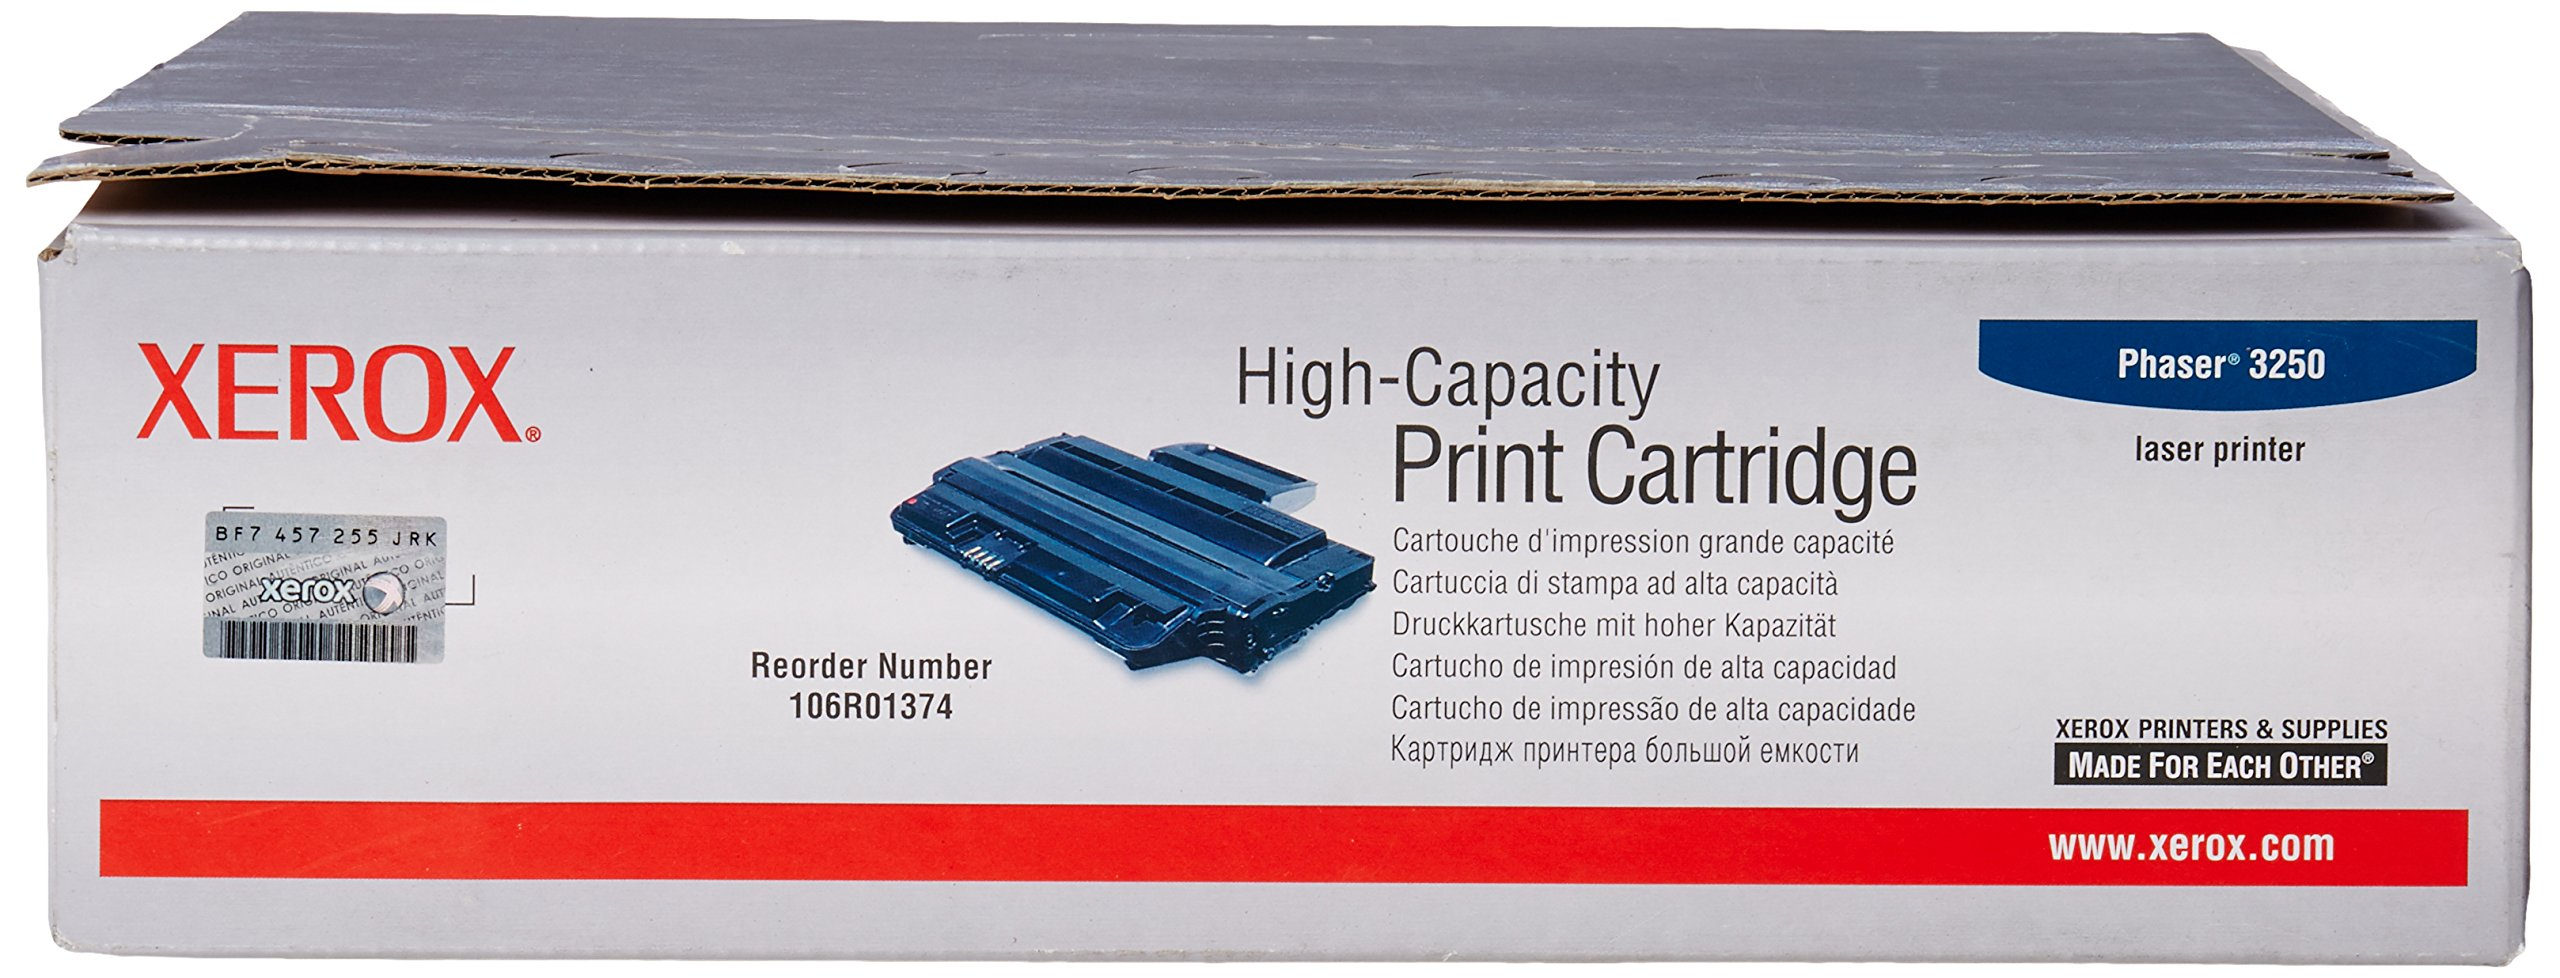 Genuine Xerox High Capacity Black Print Cartridge for the Phaser 3250, 106R01374